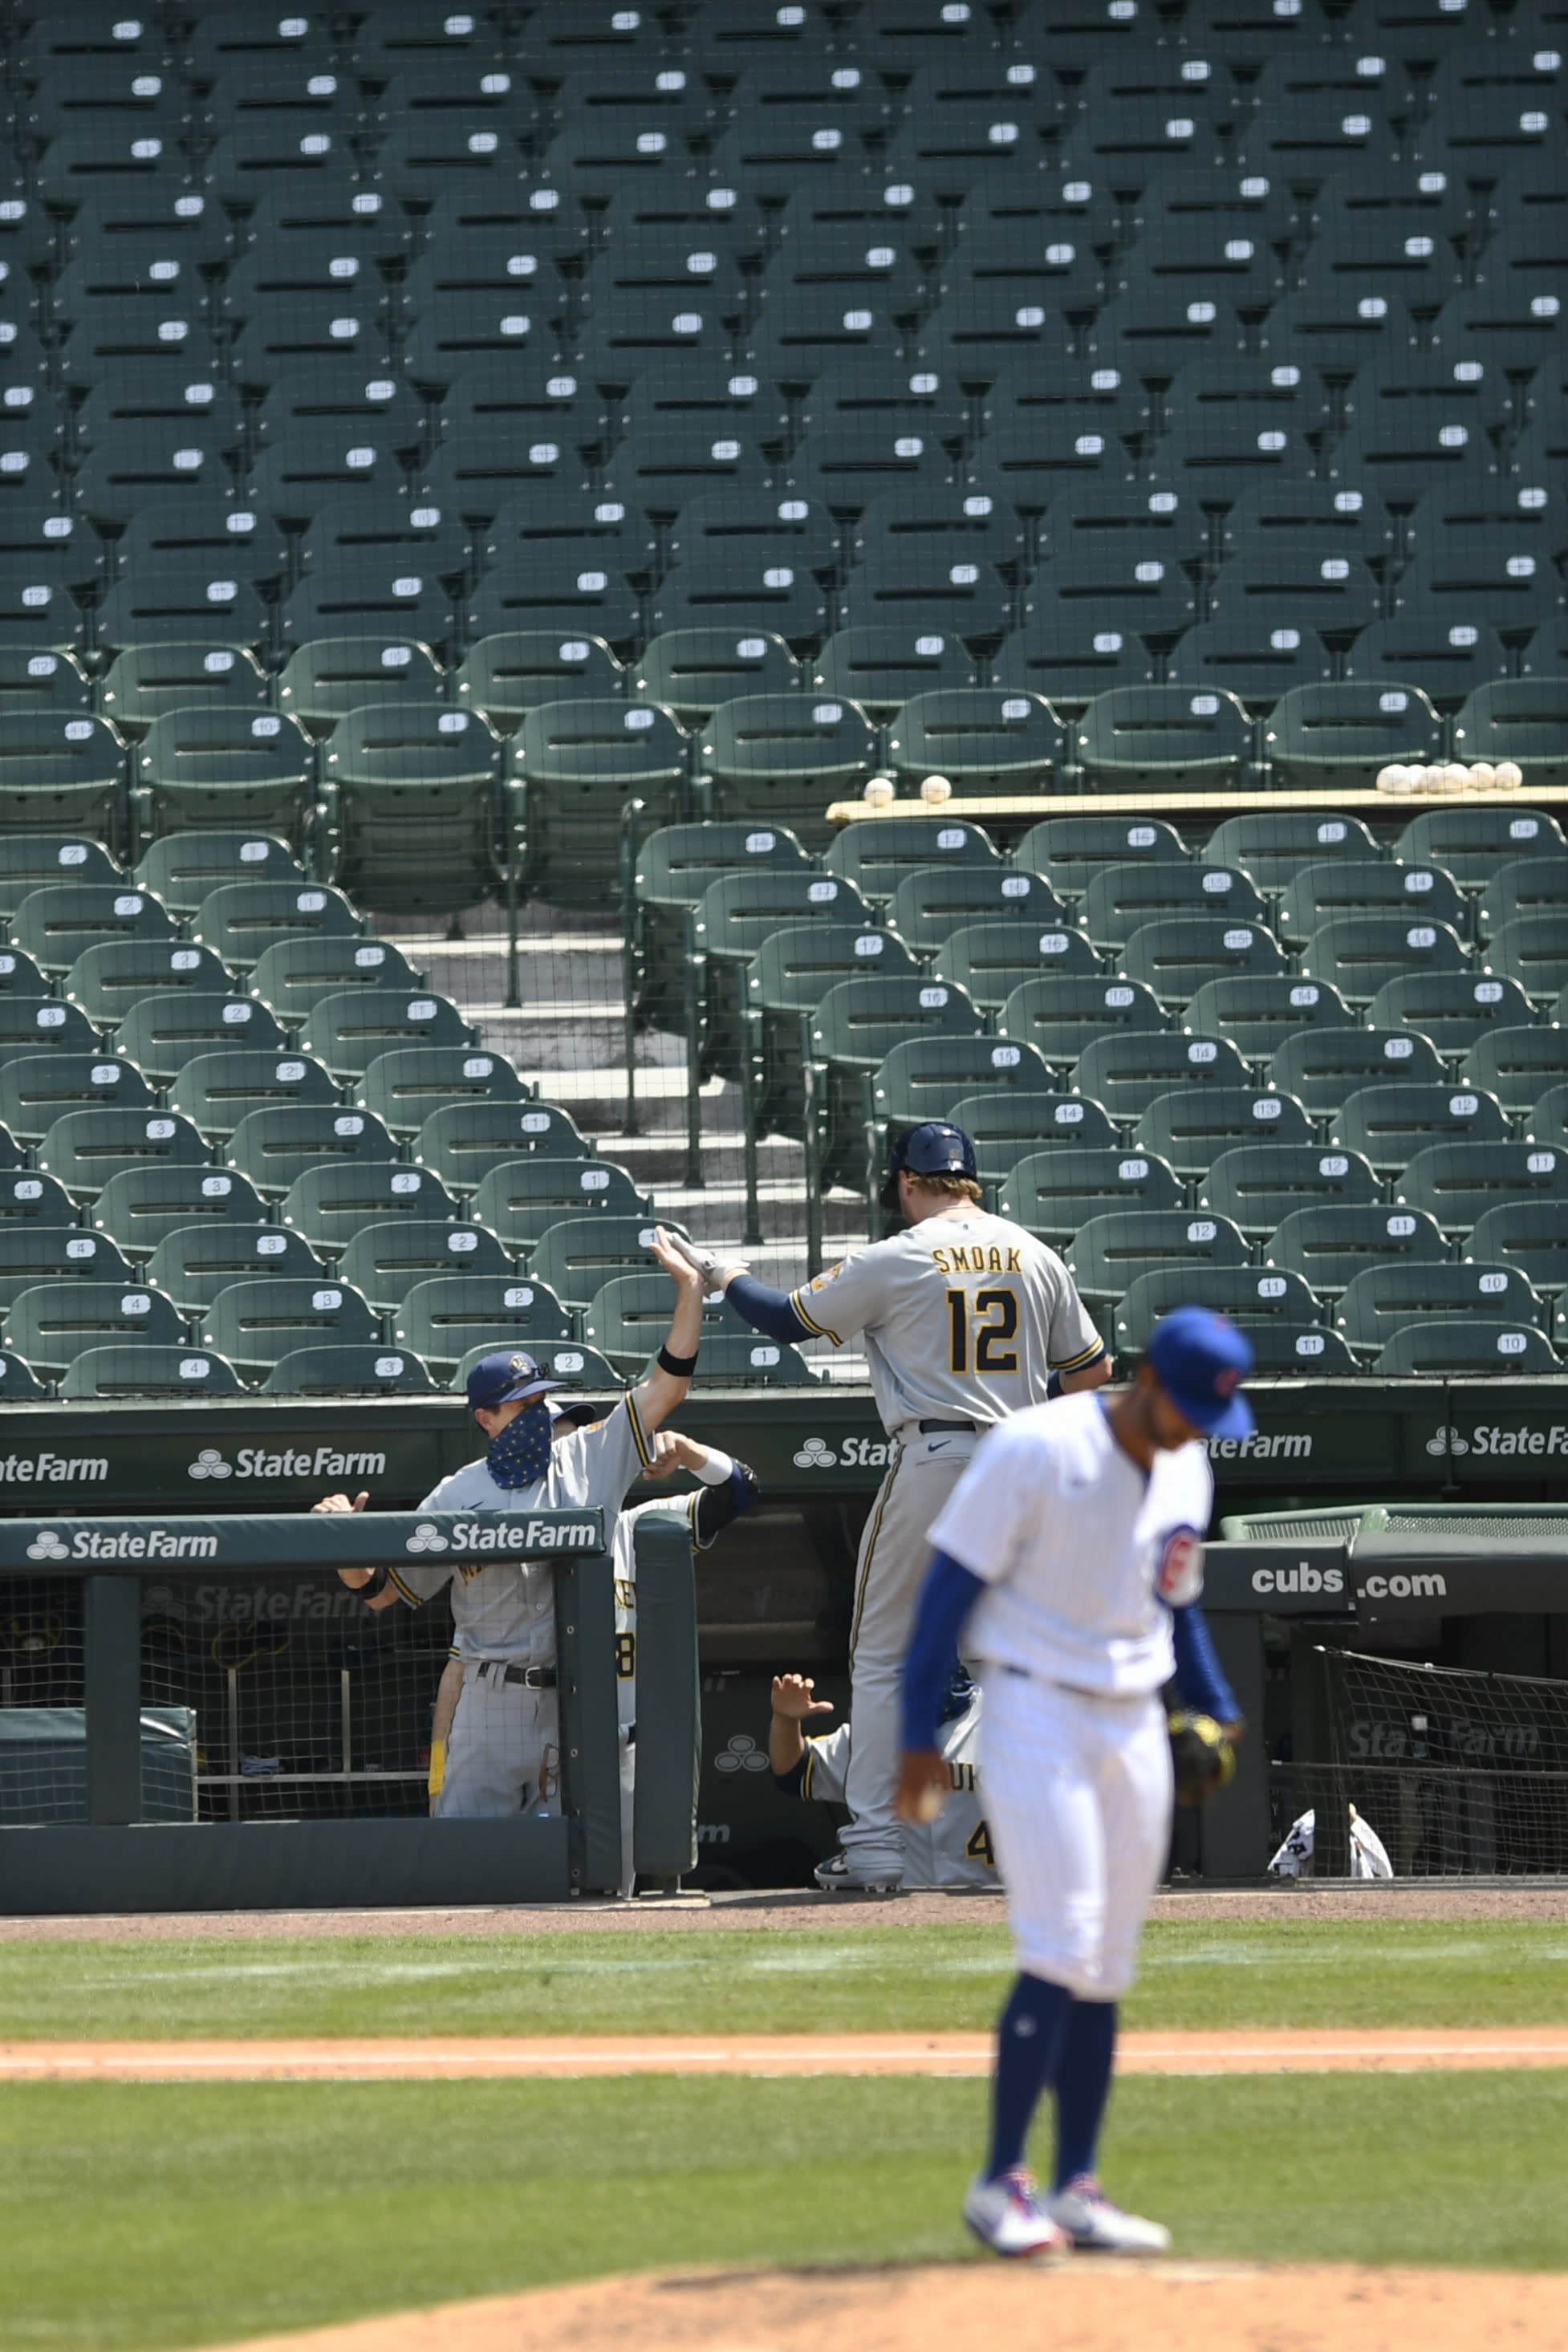 Milwaukee Brewers manager Craig Counsell left, celebrates with Justin Smoak (12) at the dugout after he hit a solo home run during the fifth inning of a baseball game against the Chicago Cubs Saturday, July 25, 2020, in Chicago. (AP Photo/Paul Beaty)